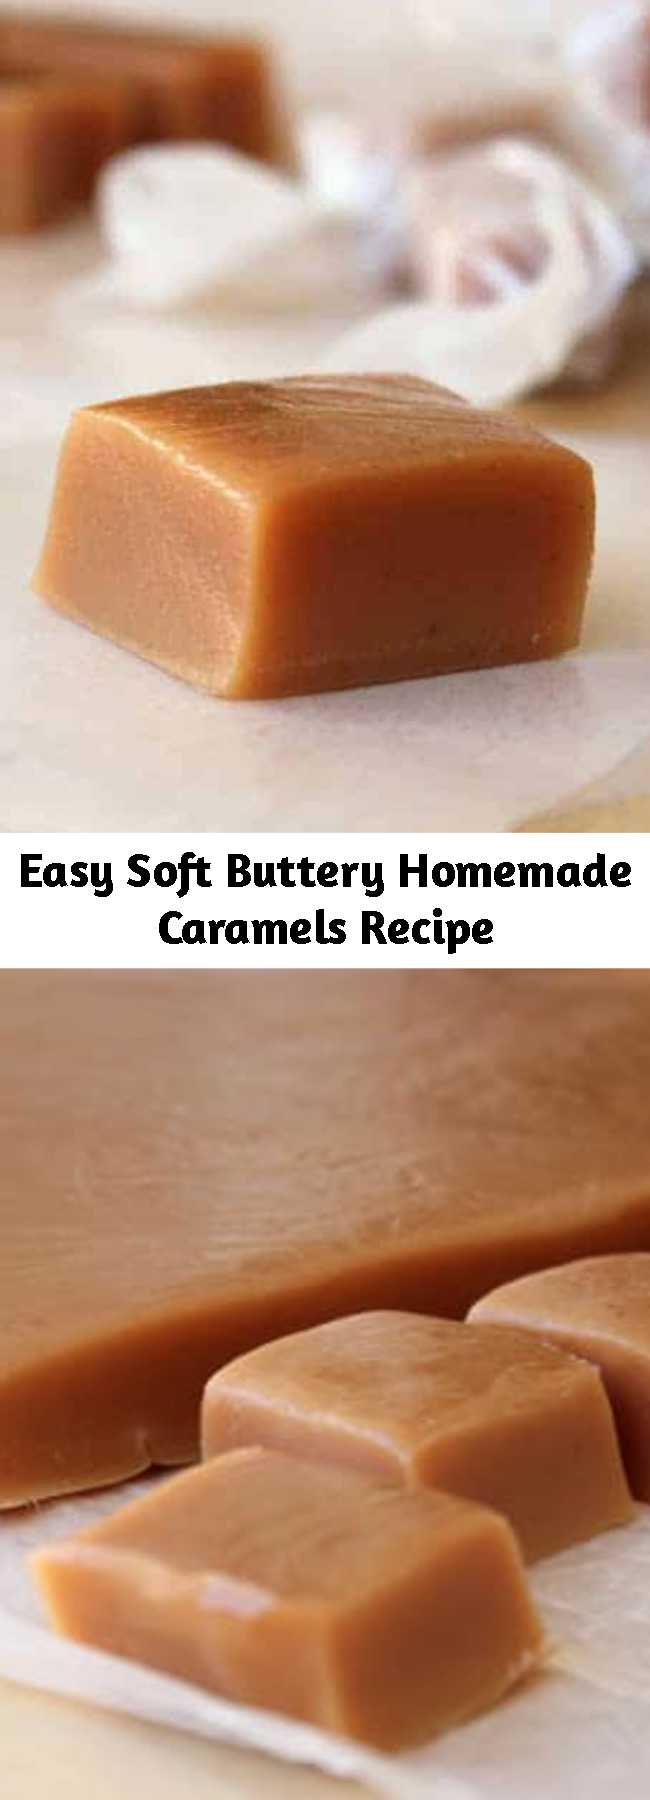 Easy Soft Buttery Homemade Caramels Recipe - Soft, buttery and perfect. A tried-and-true recipe you'll want to make every Christmas.